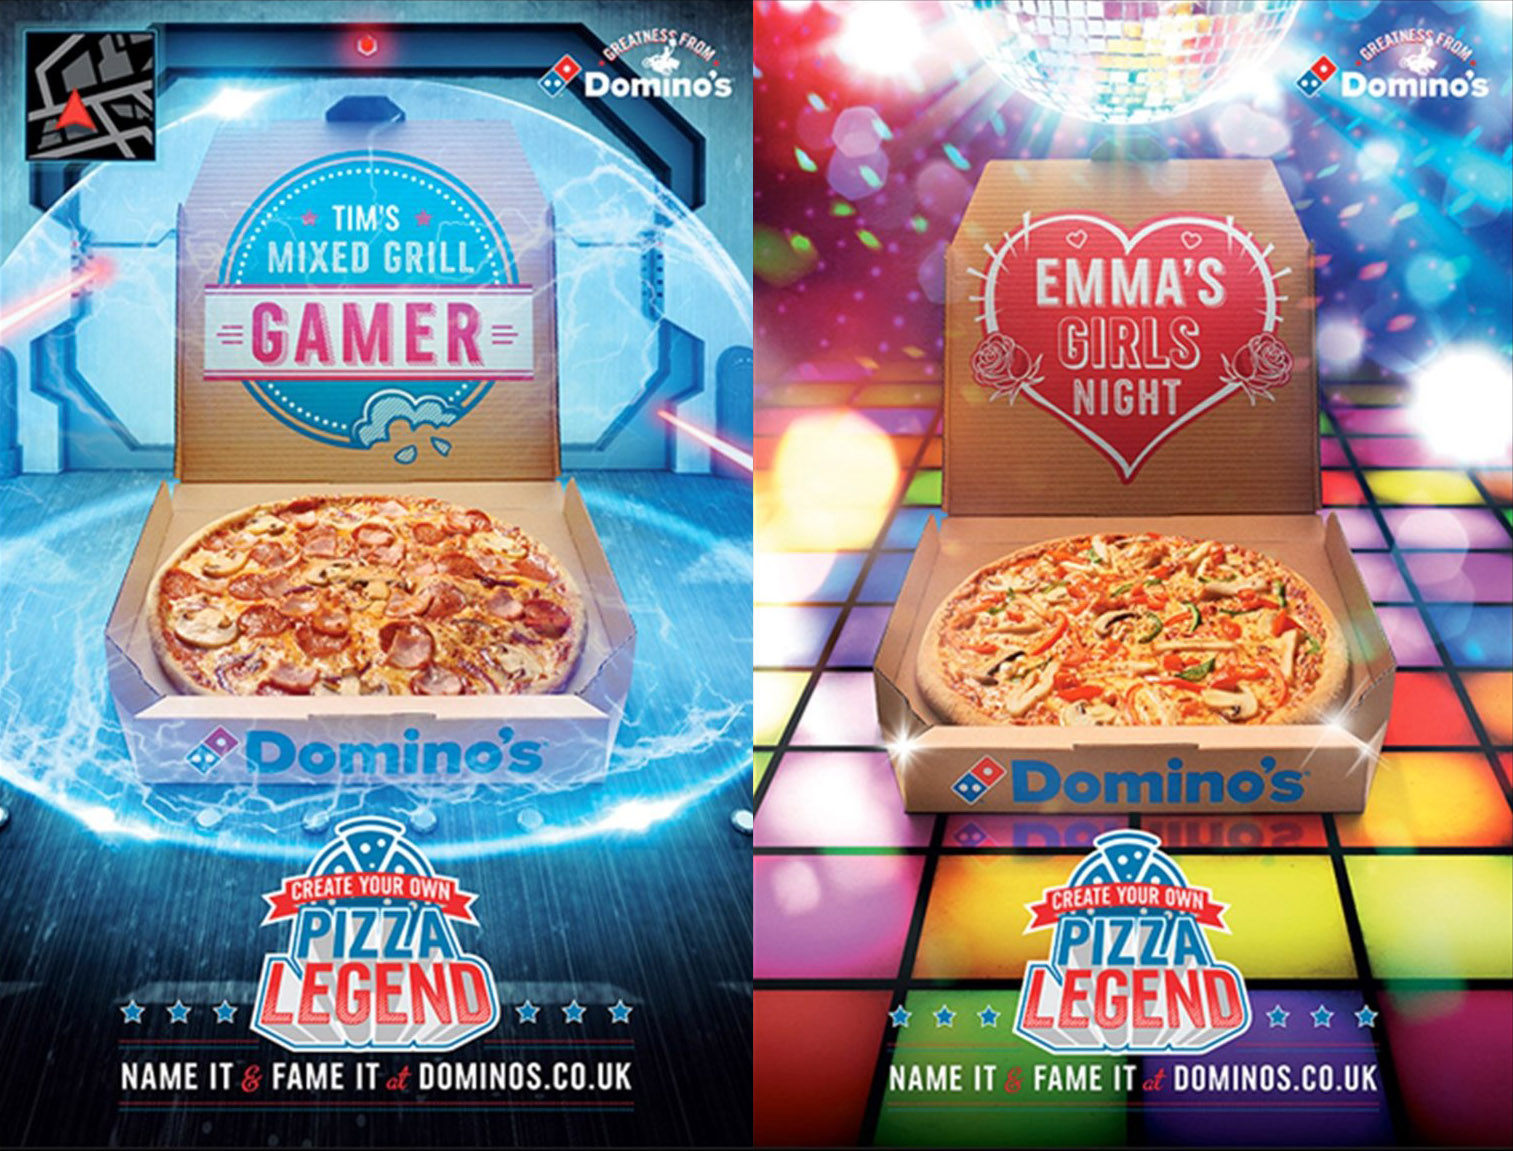 The Pizza Legends campaign and digital platform allows users to choose a pizza base, sauce, and topping combination with a few extra magical ingredients thrown in. Examples shown are digital out of home executions, the creative was also used across social and digital channels. -